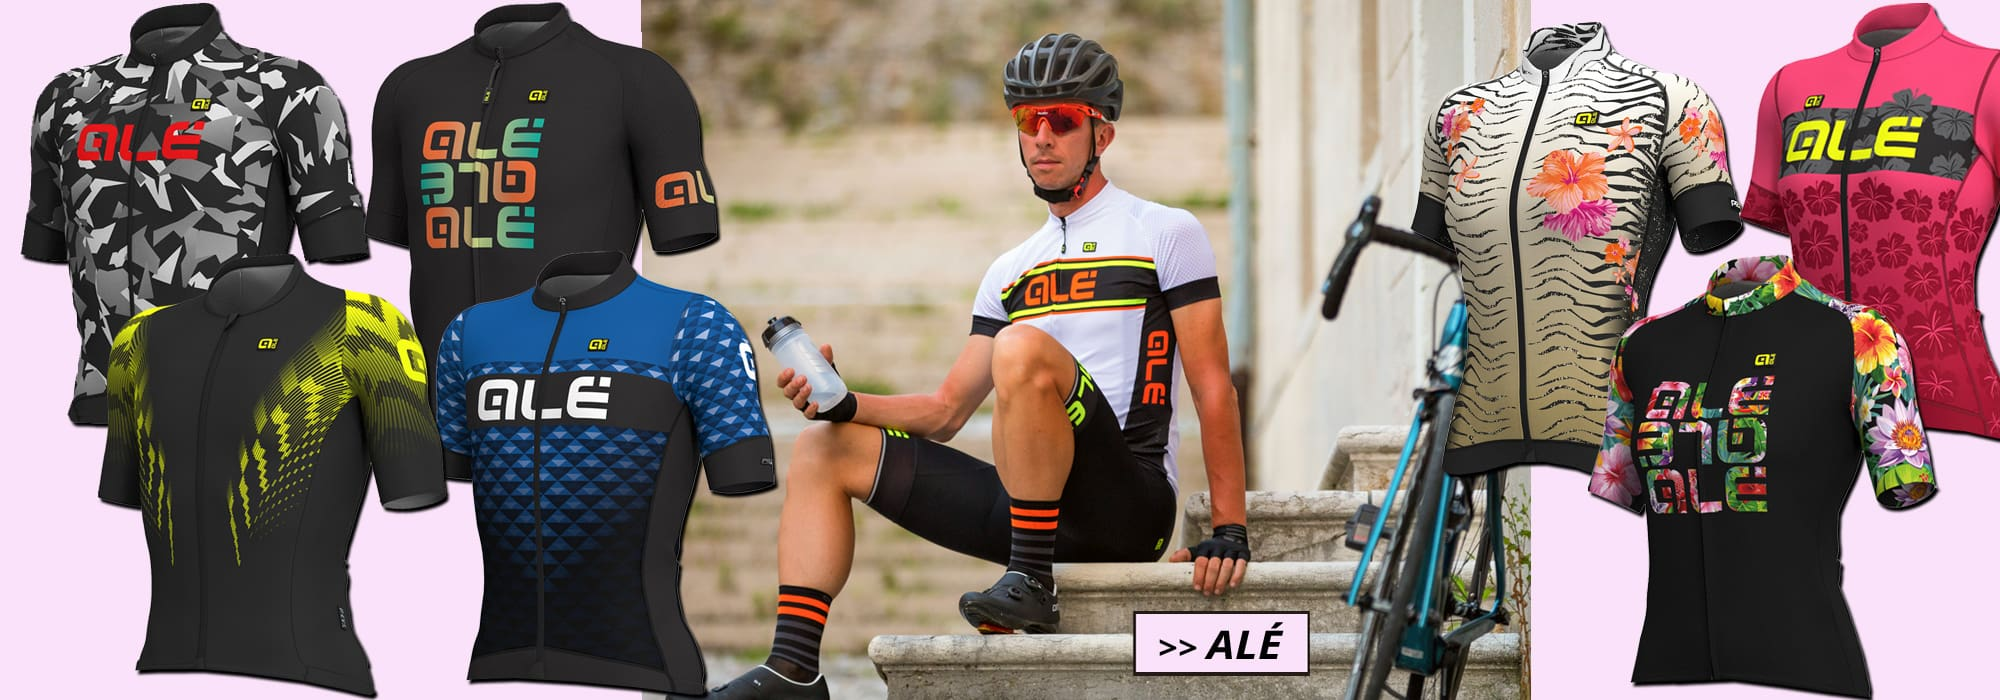 Ale 2019 - this cycling wear stands for vitality and joy of life